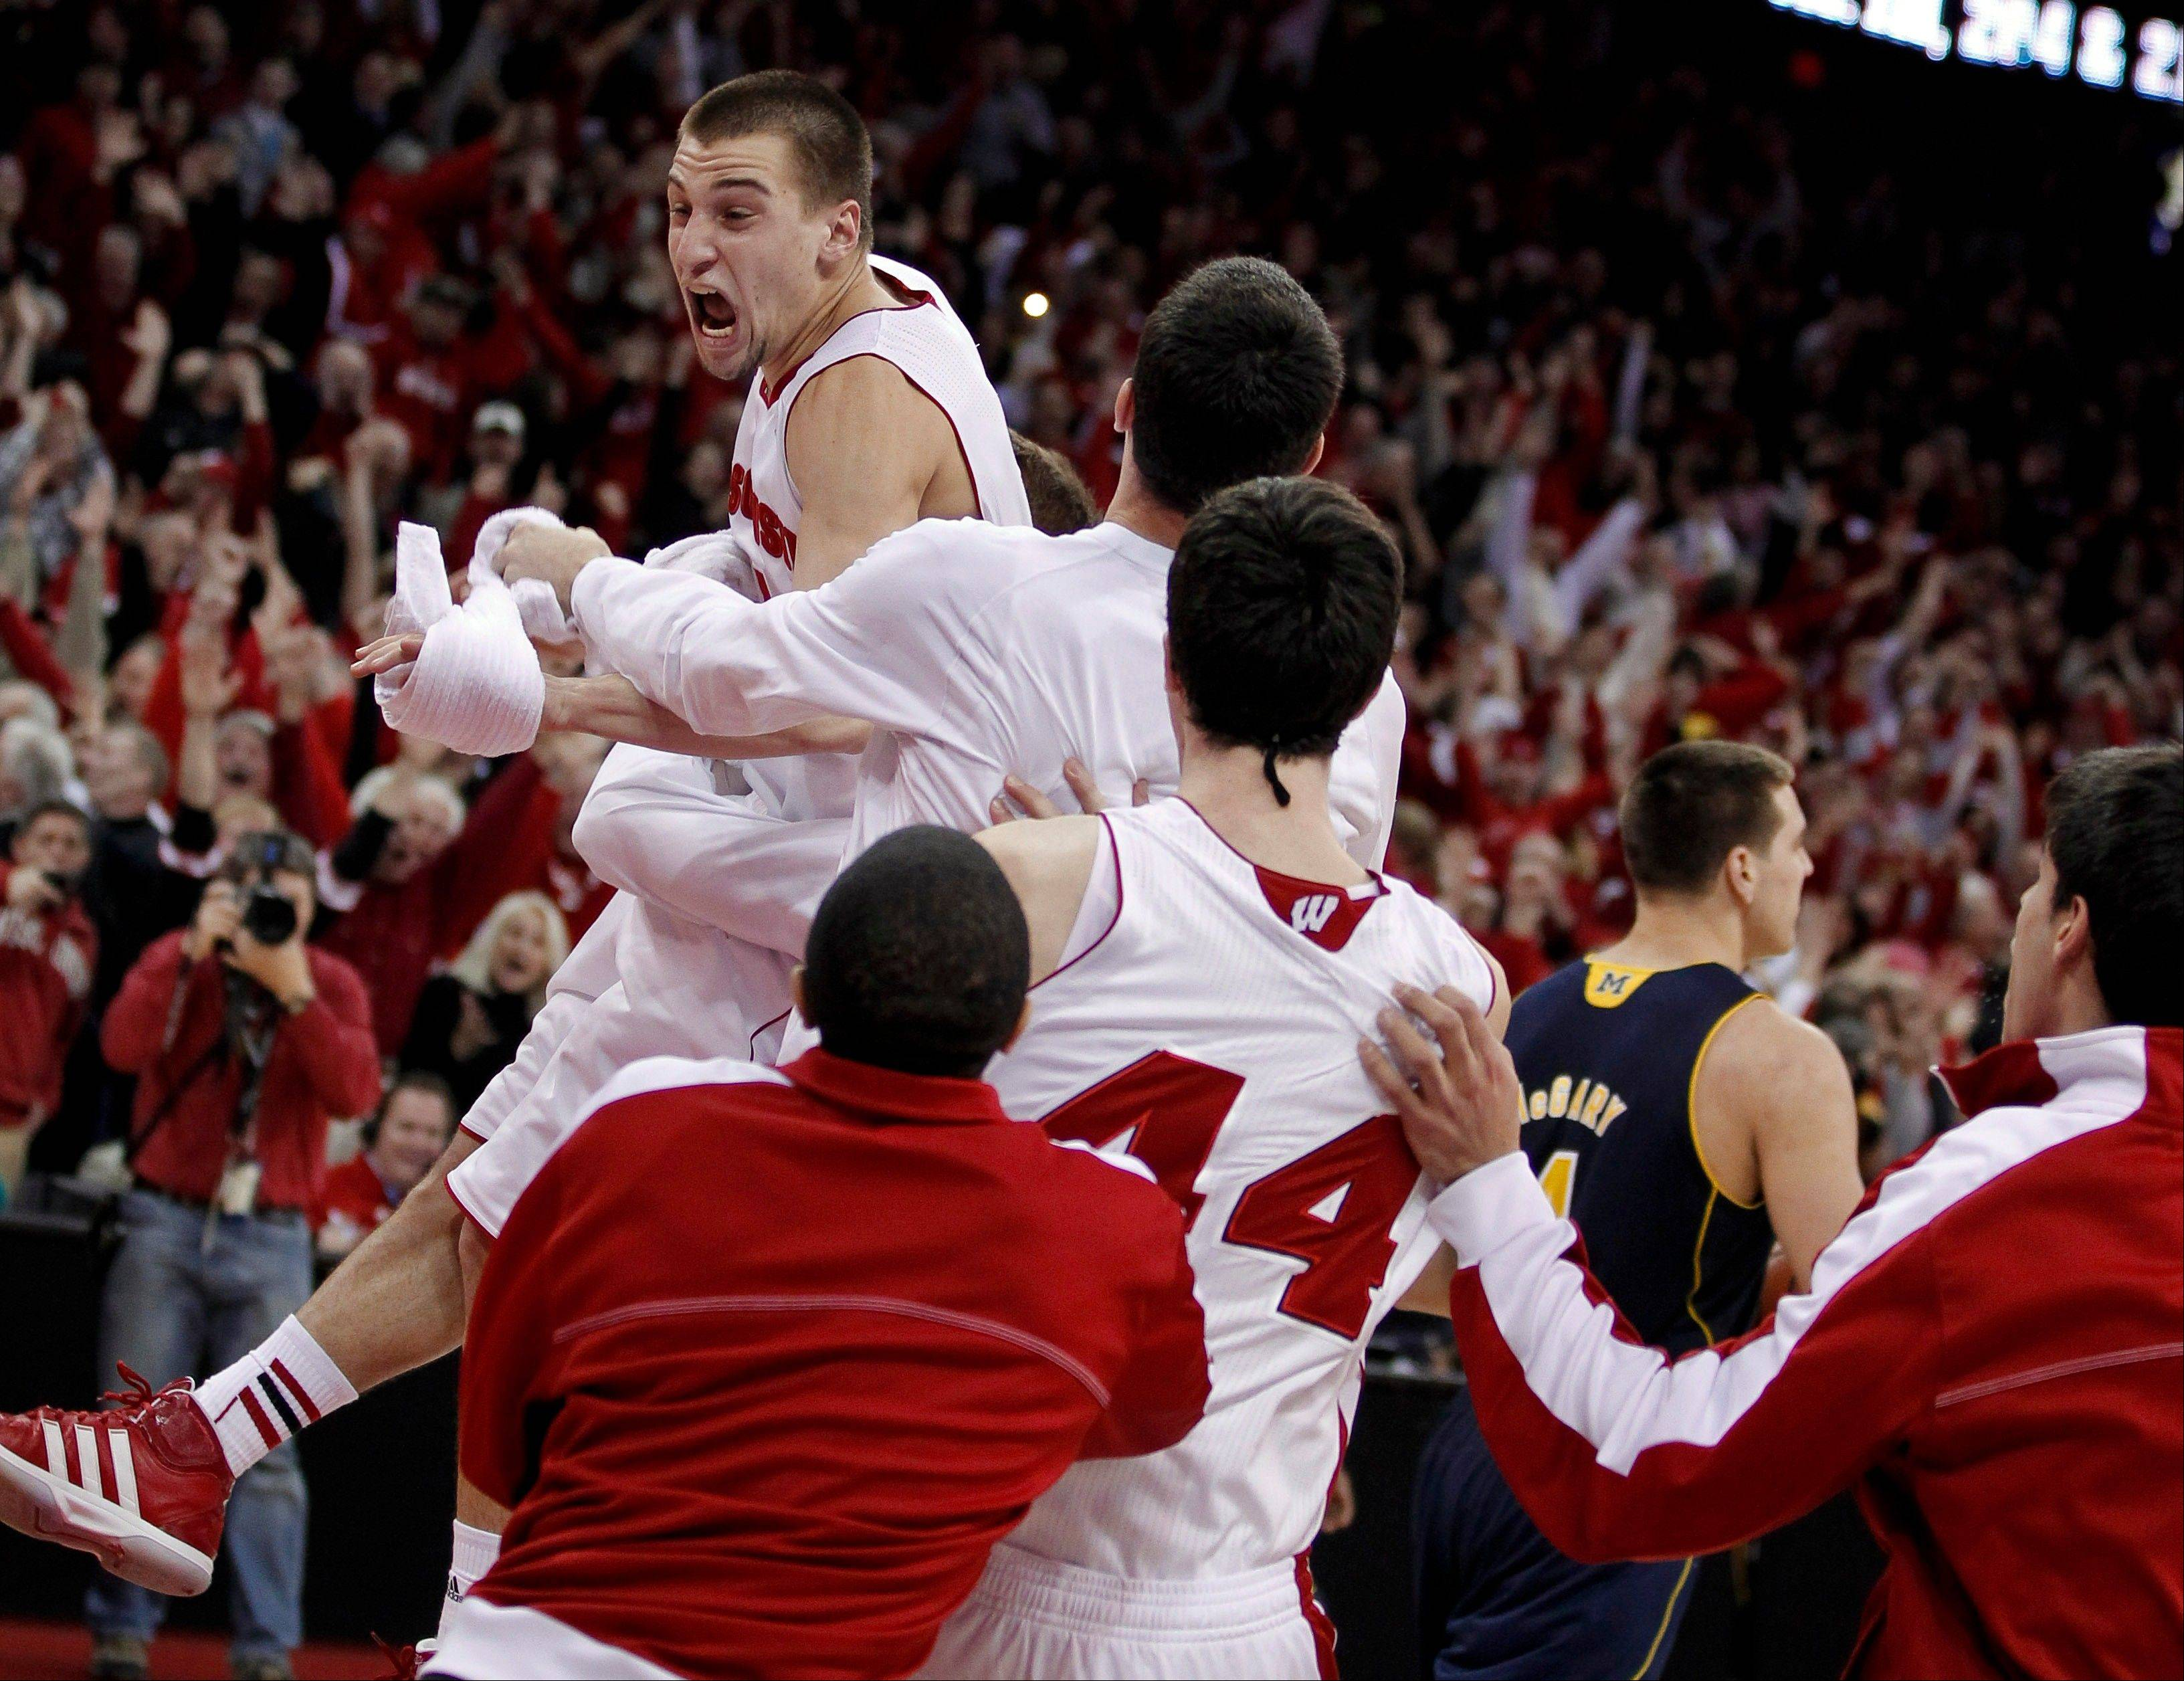 Mundelein native and Wisconsin player Ben Brust, top, celebrates after hitting a 3-point shot in the final second of regulation against Michigan in an NCAA college basketball game Saturday, Feb. 9, 2013, in Madison, Wis. Wisconsin defeated Michigan 65-62 in overtime.